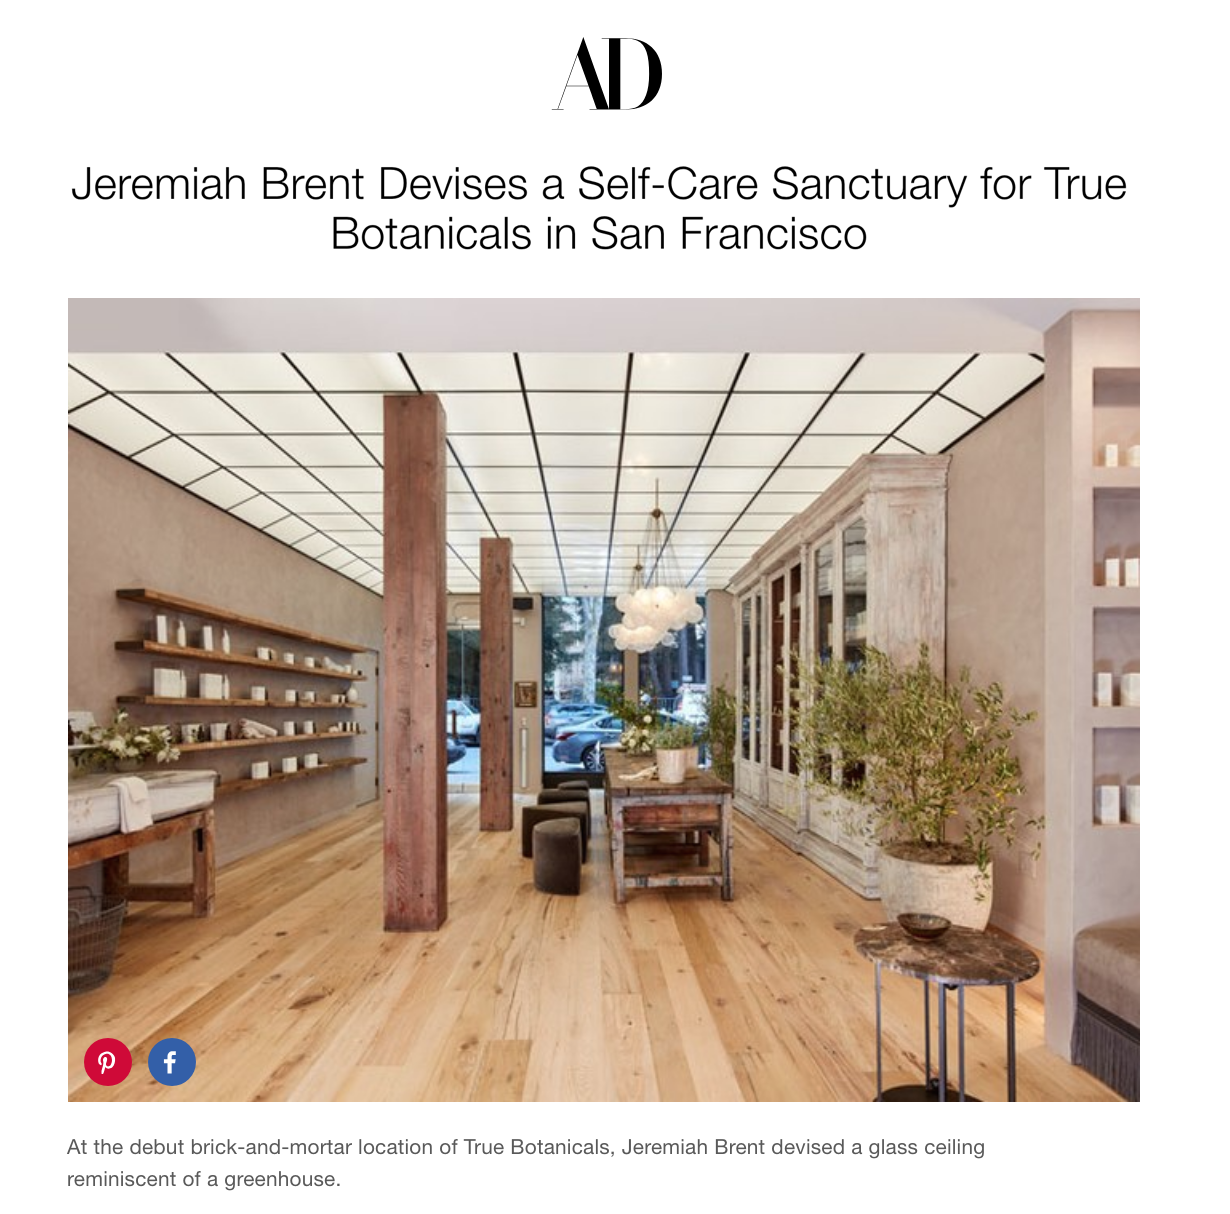 Architectural Digest, Nov. 2018